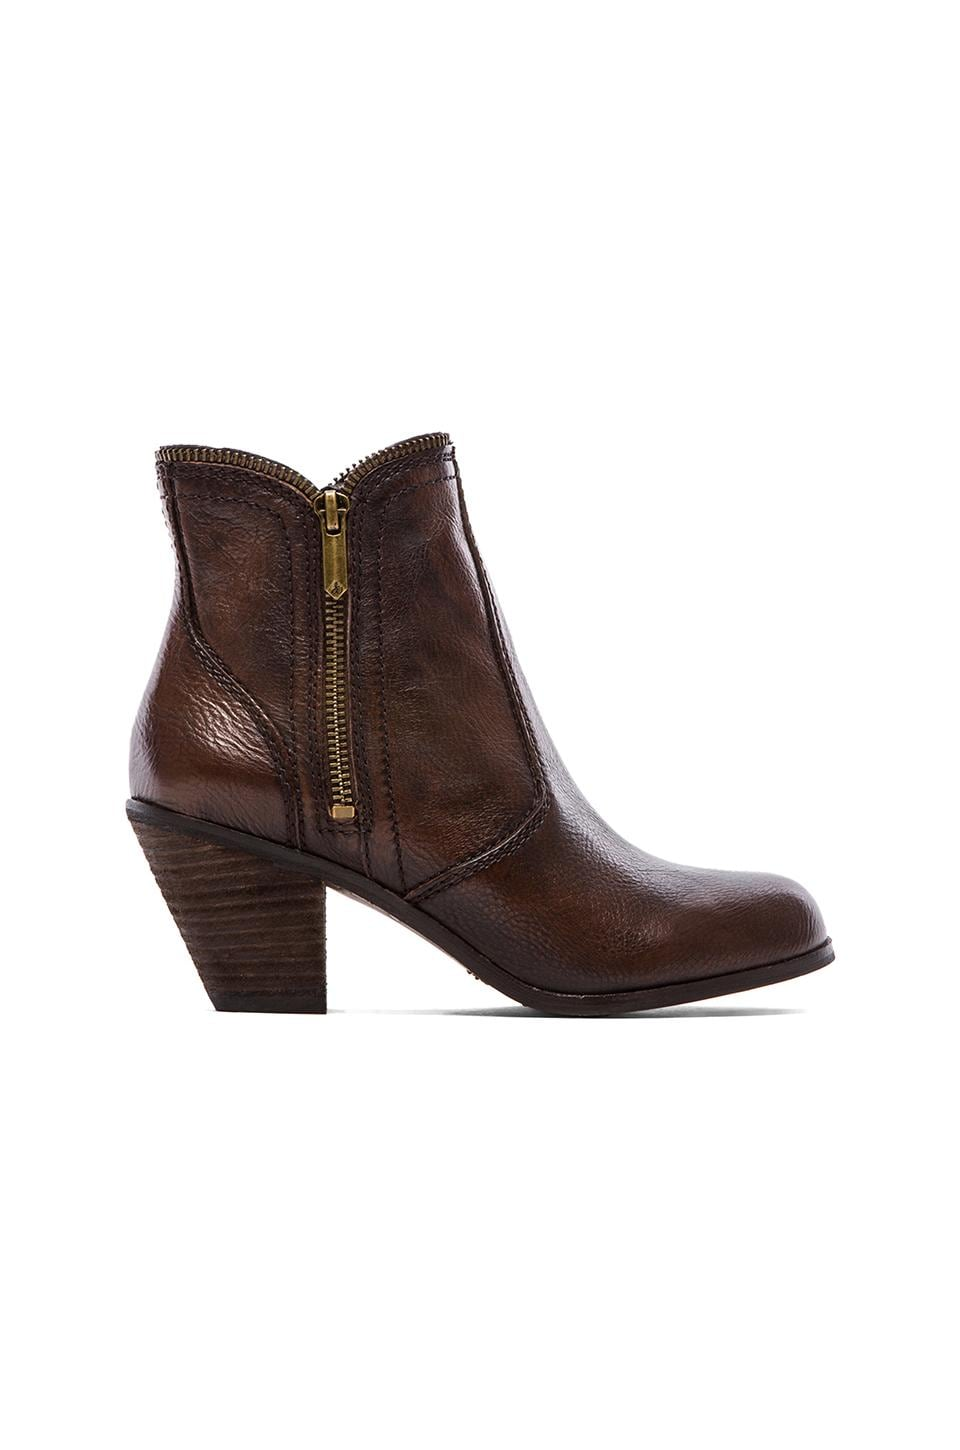 Sam Edelman Linden Bootie in Dark Brown